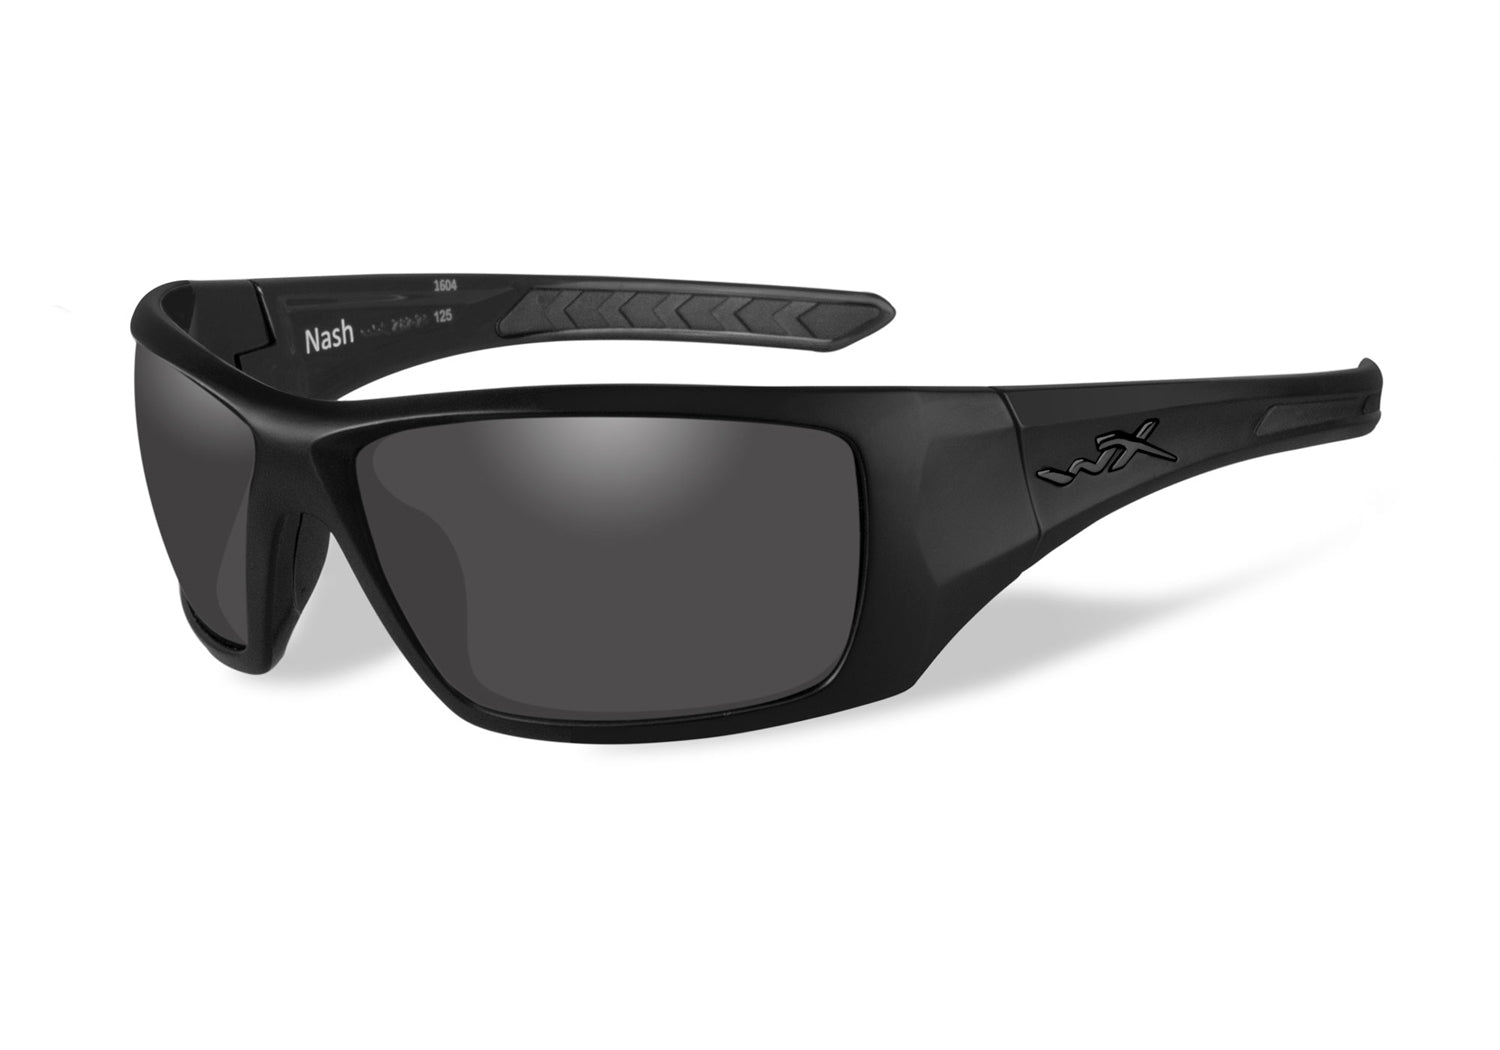 Wiley X Nash Prescription Sunglasses